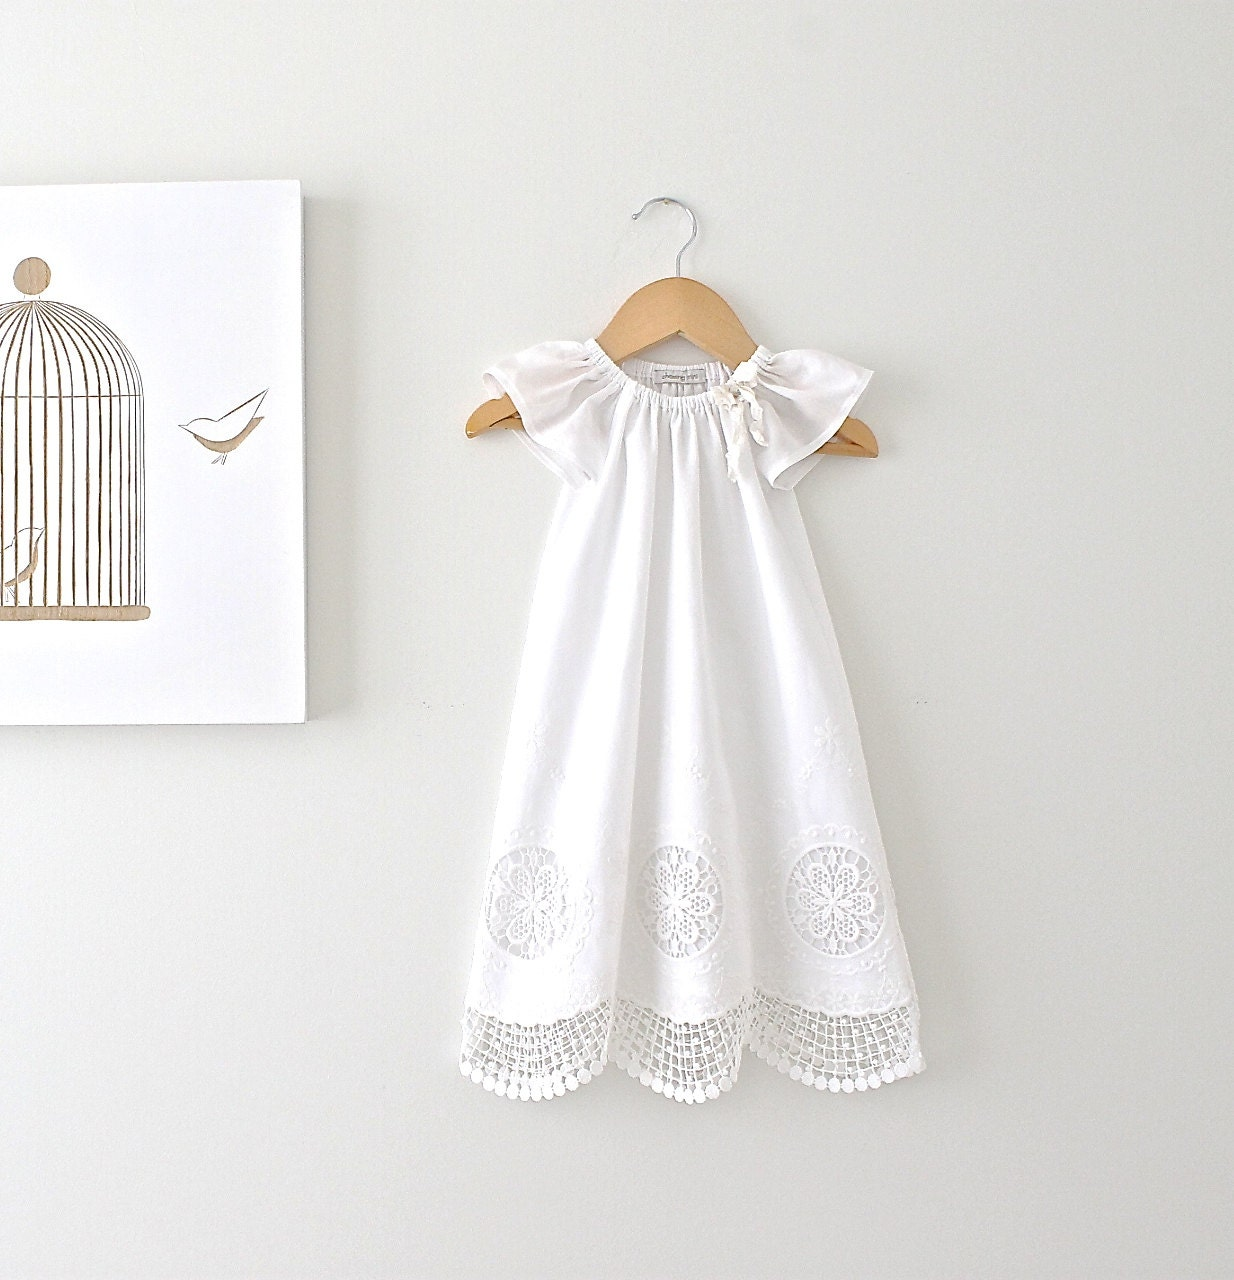 Christening Gowns. invalid category id. Christening Gowns. Showing 40 of results that match your query. Baby Boys White Detachable Gown Cotton Weaved Romper Christening Set M. See Details. Product - Baby Girls White Glitter Accent Satin Organza Bonnet Christening Gown.